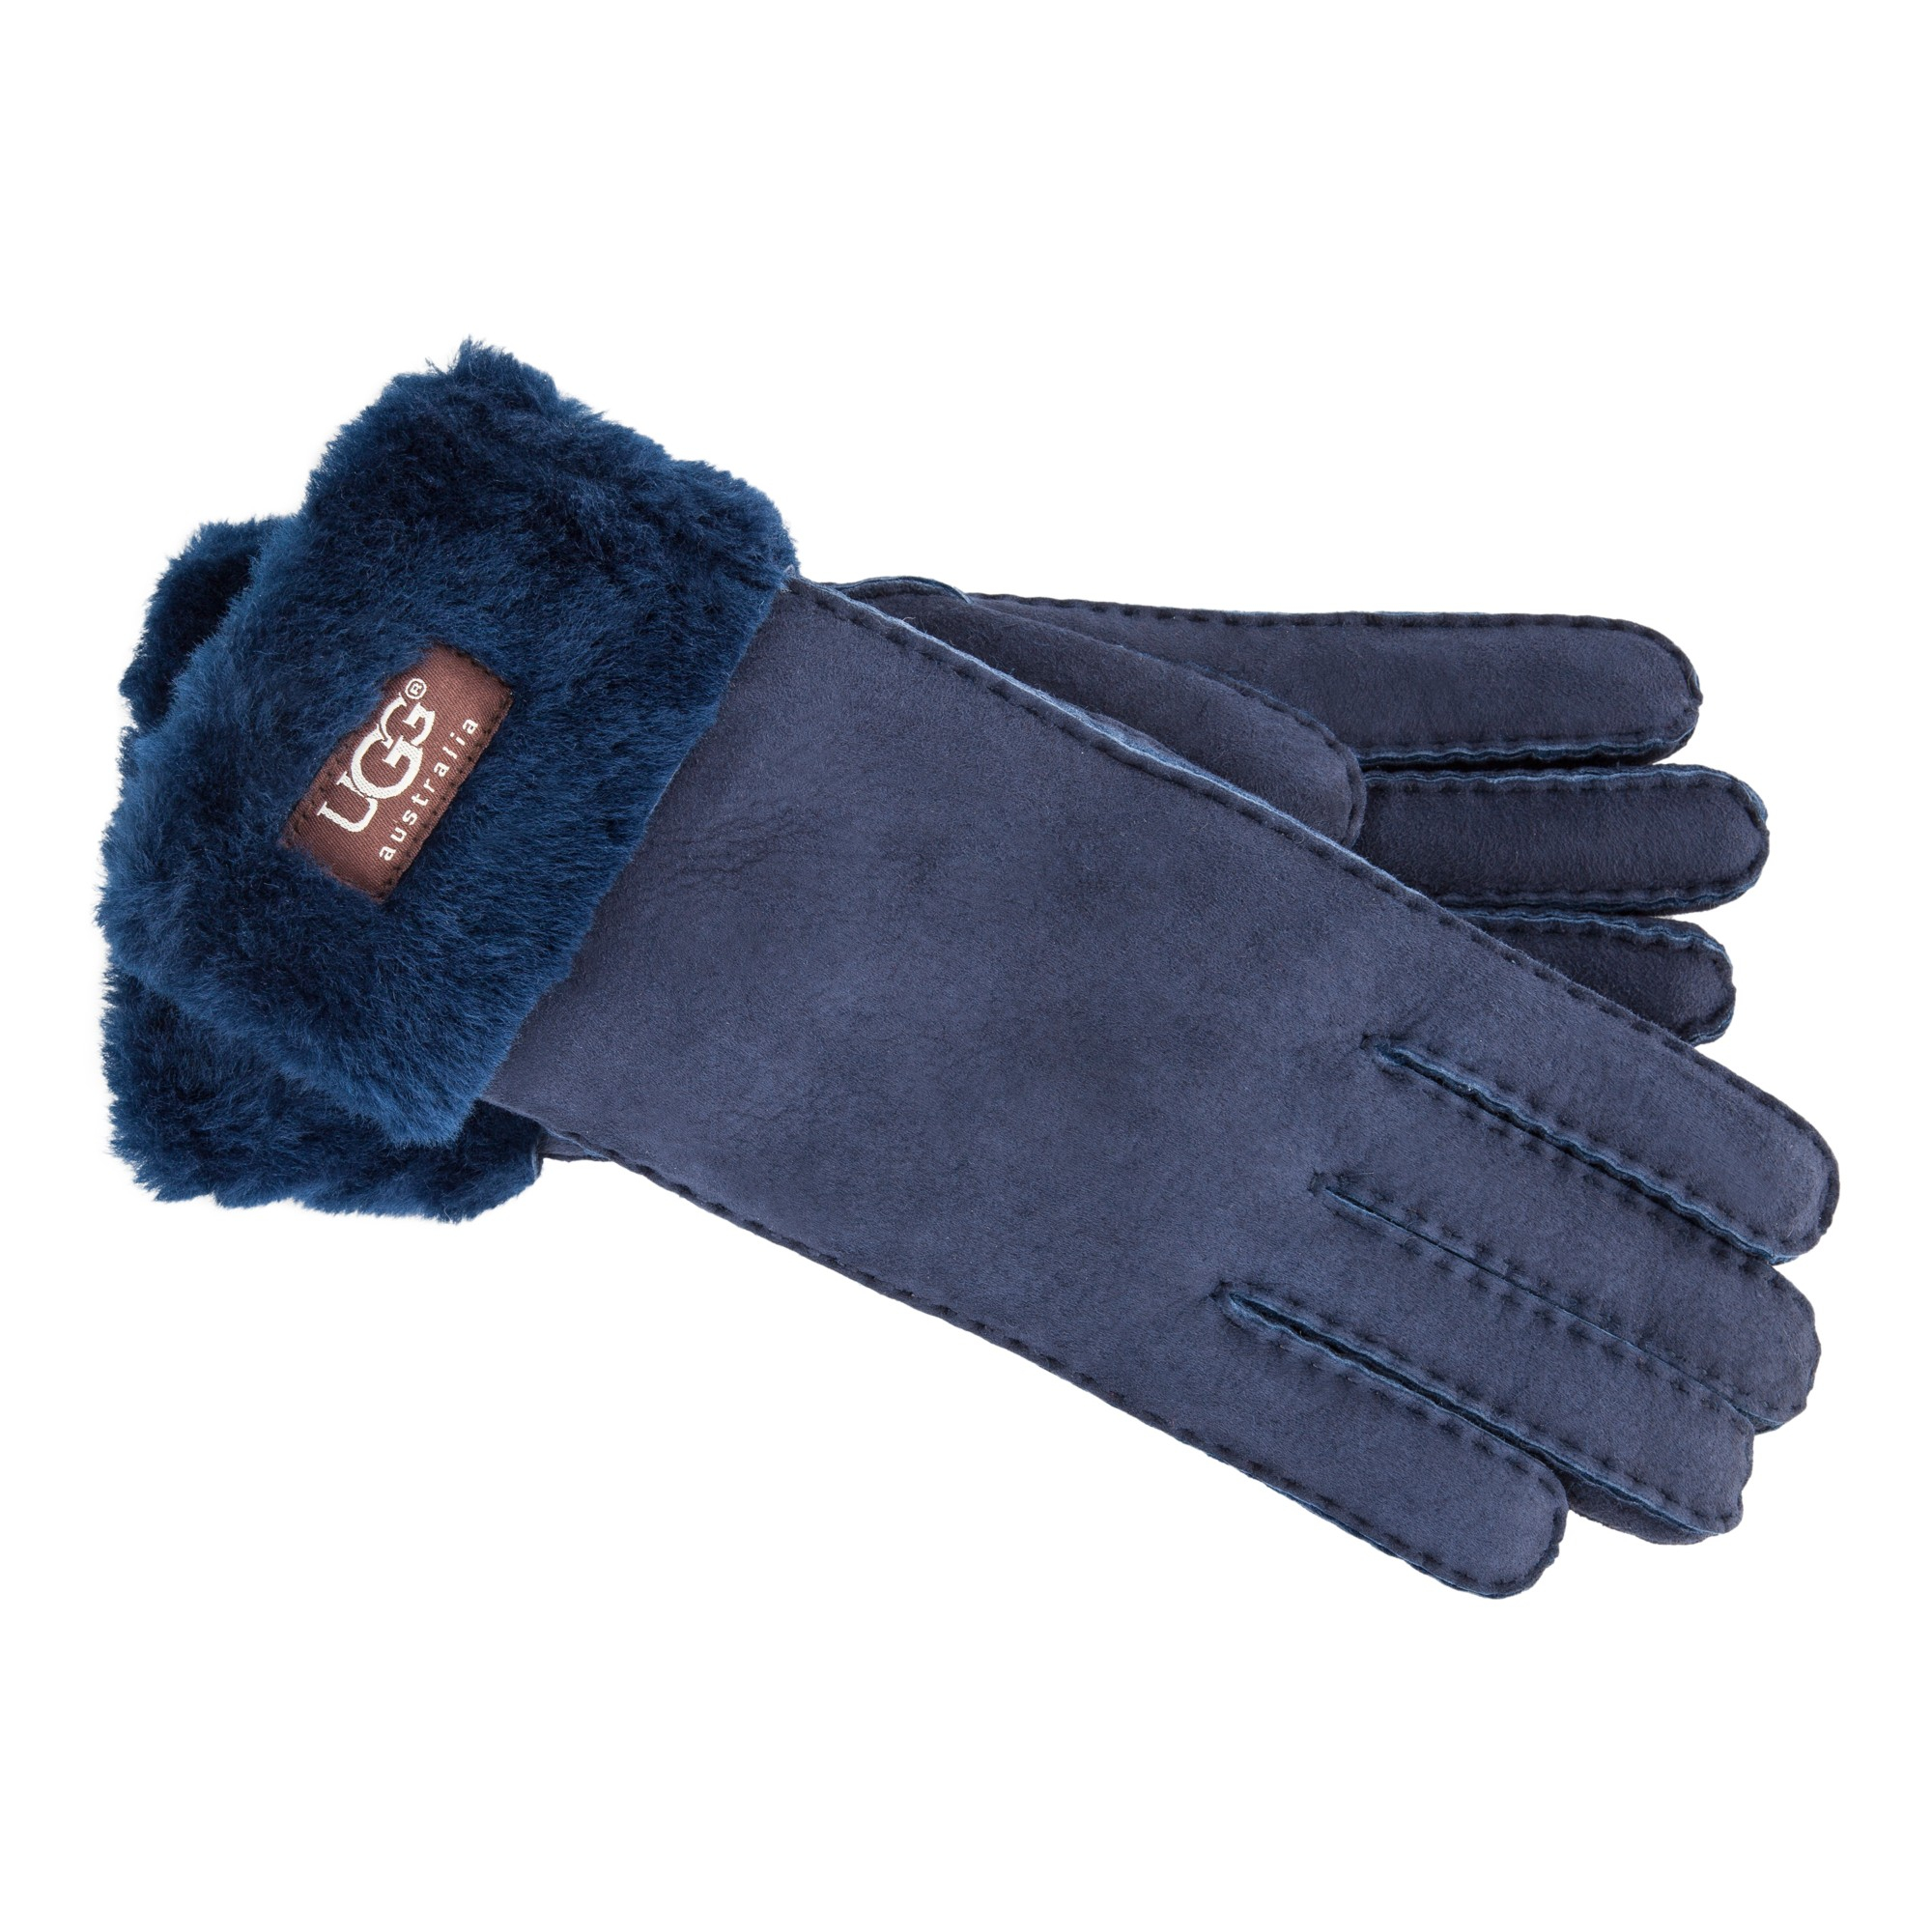 Ugg Sale Gloves